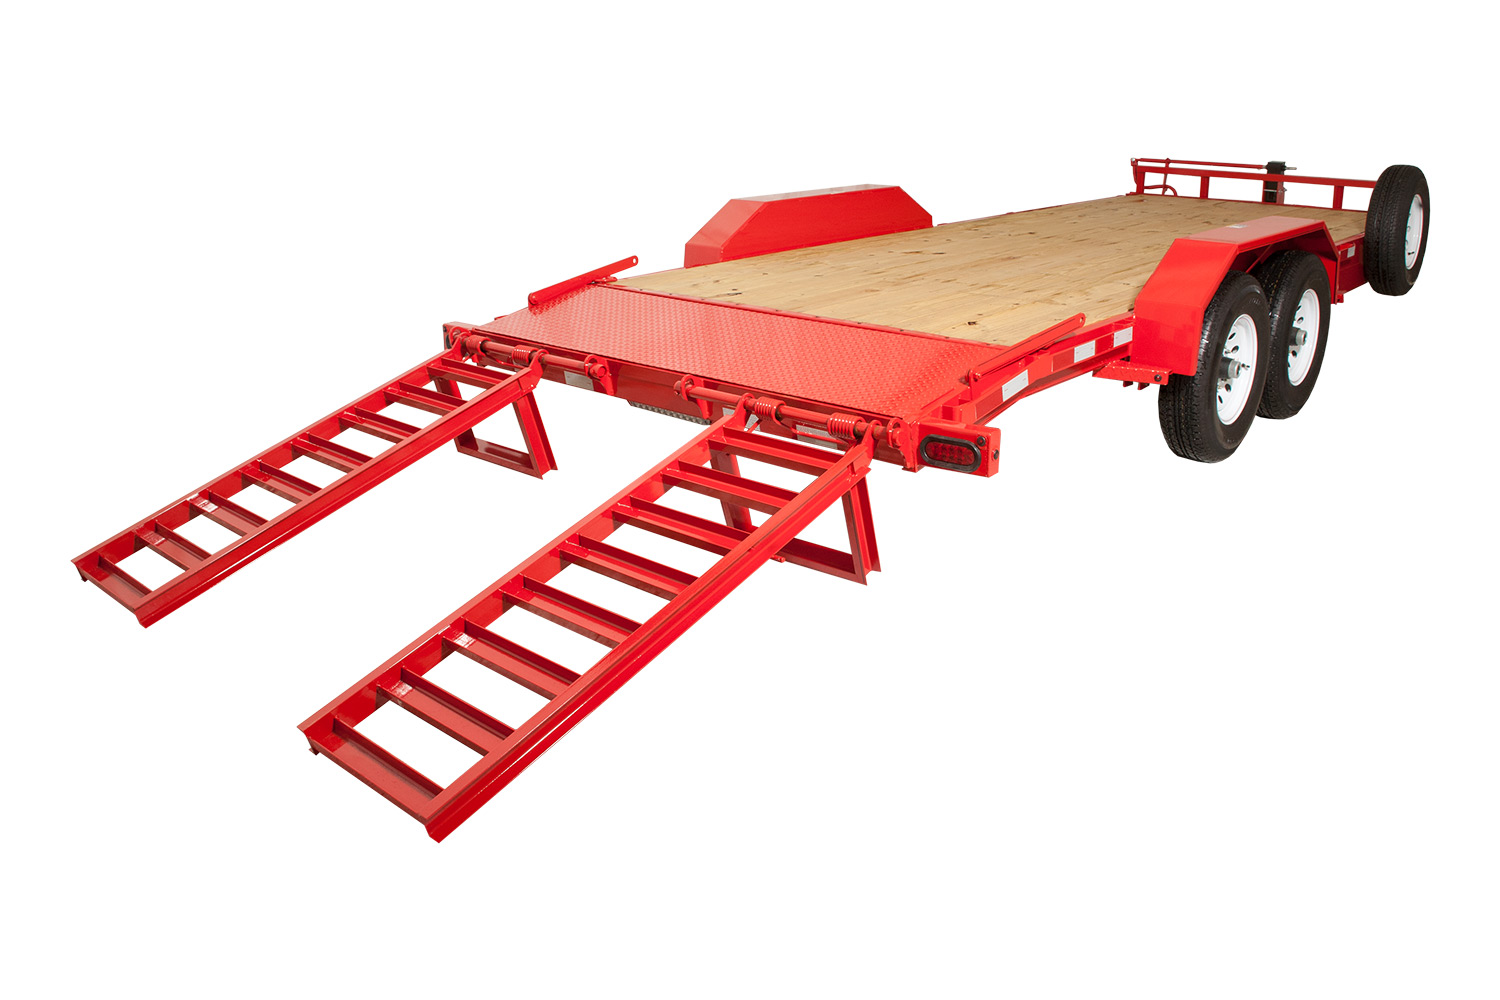 H&H Industrial Trailer